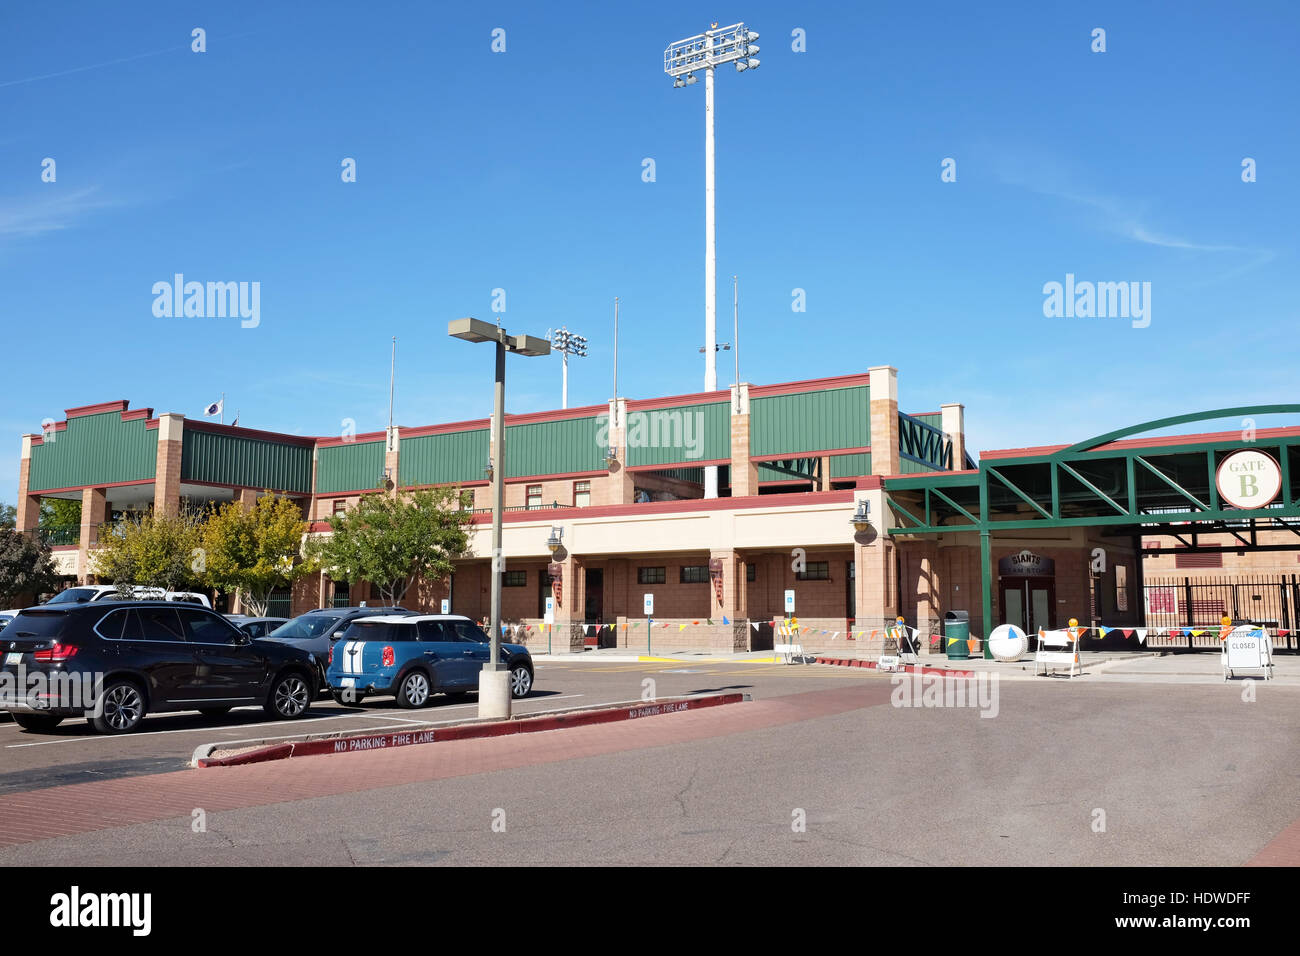 Gate B at Scottsdale Stadium the Spring Training home of the San Francisco Giants of  Major League Baseballs National - Stock Image